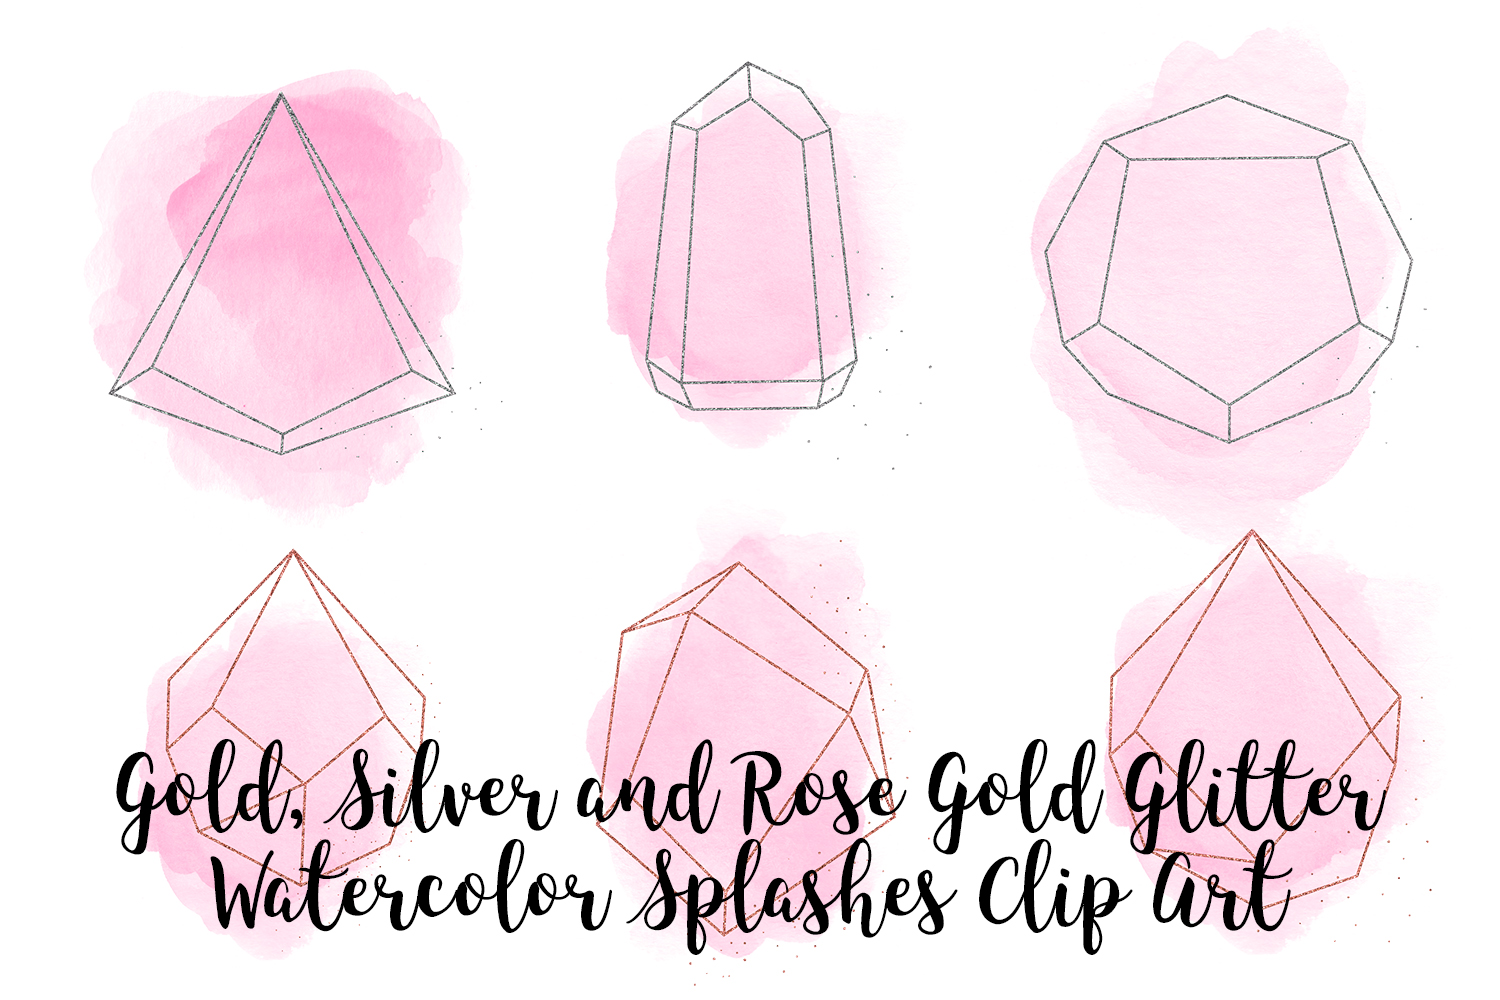 Gold, Silver and Rose Gold Crystals with Pink Watercolor example image 3